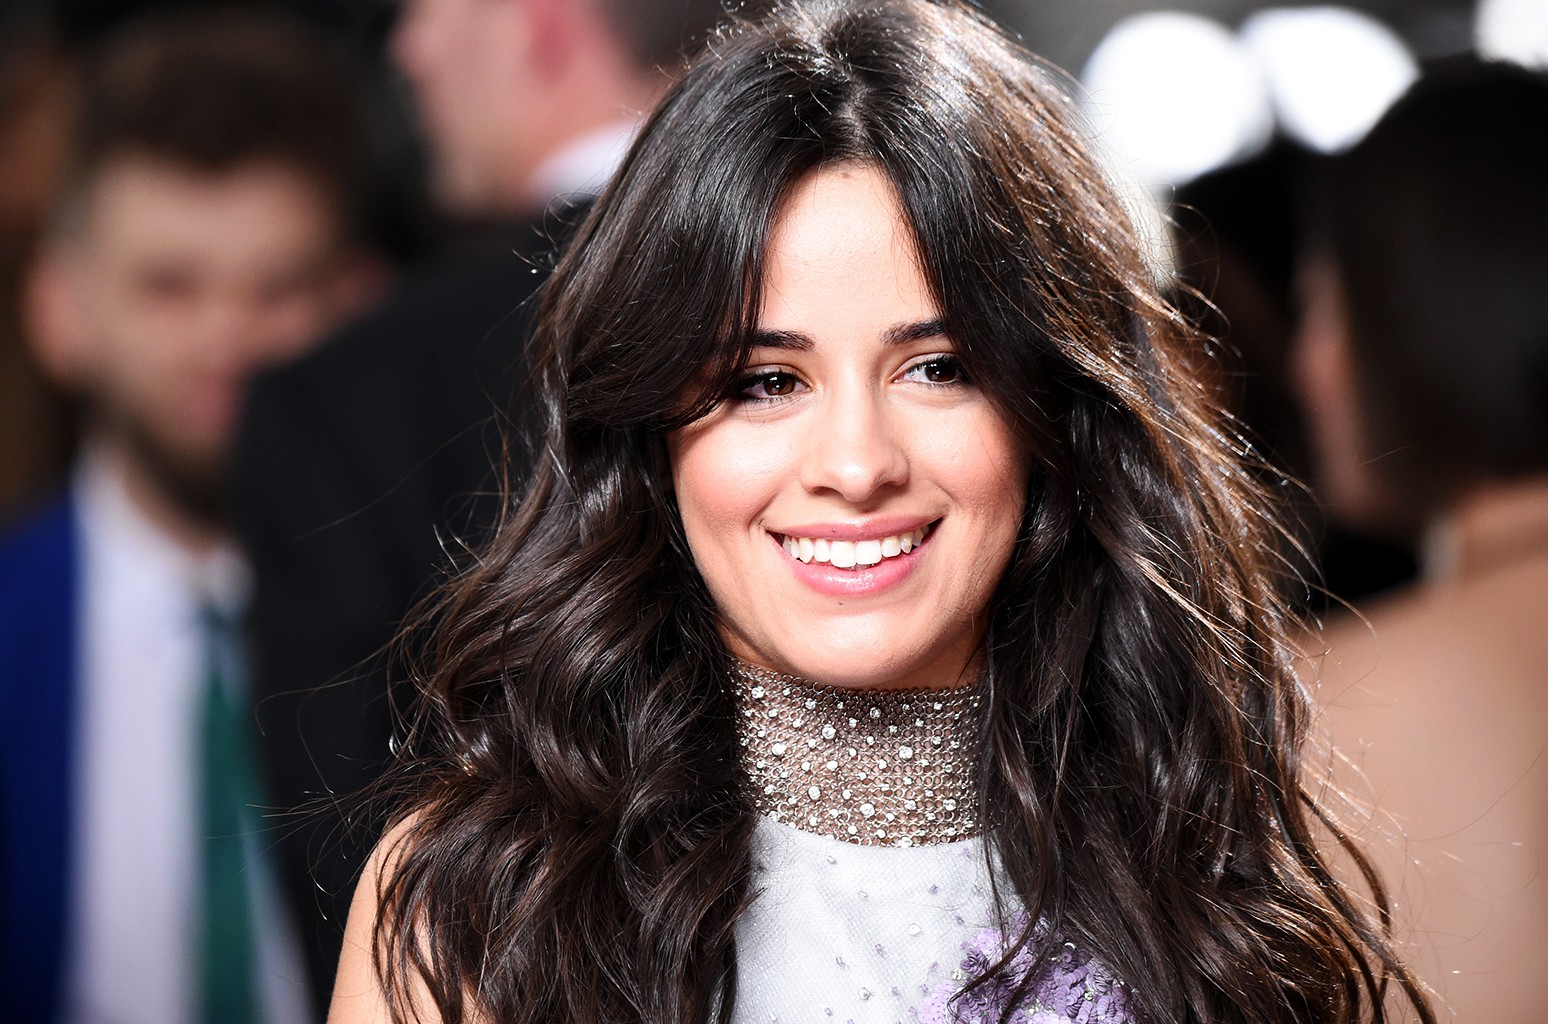 Camila Cabello attends the 59th Grammy Awards at Staples Center on Feb. 12, 2017 in Los Angeles.